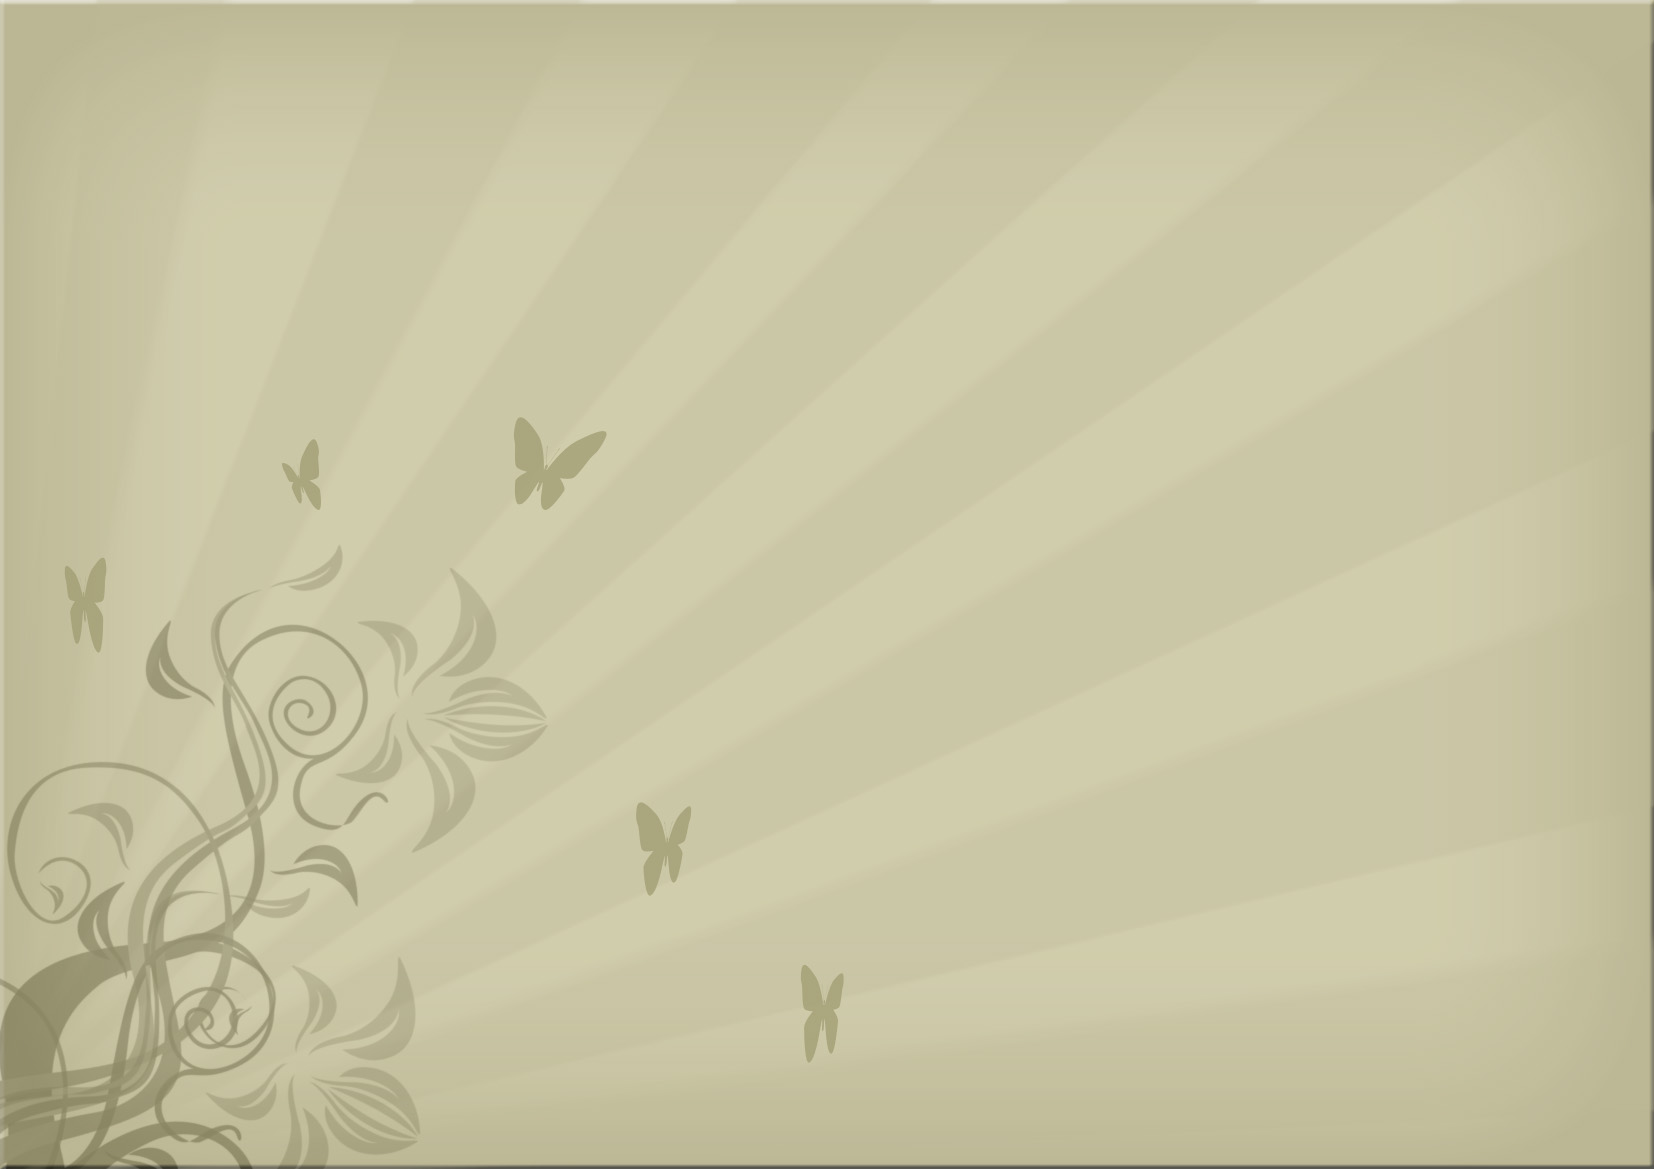 8 Free Vector WebElements Images